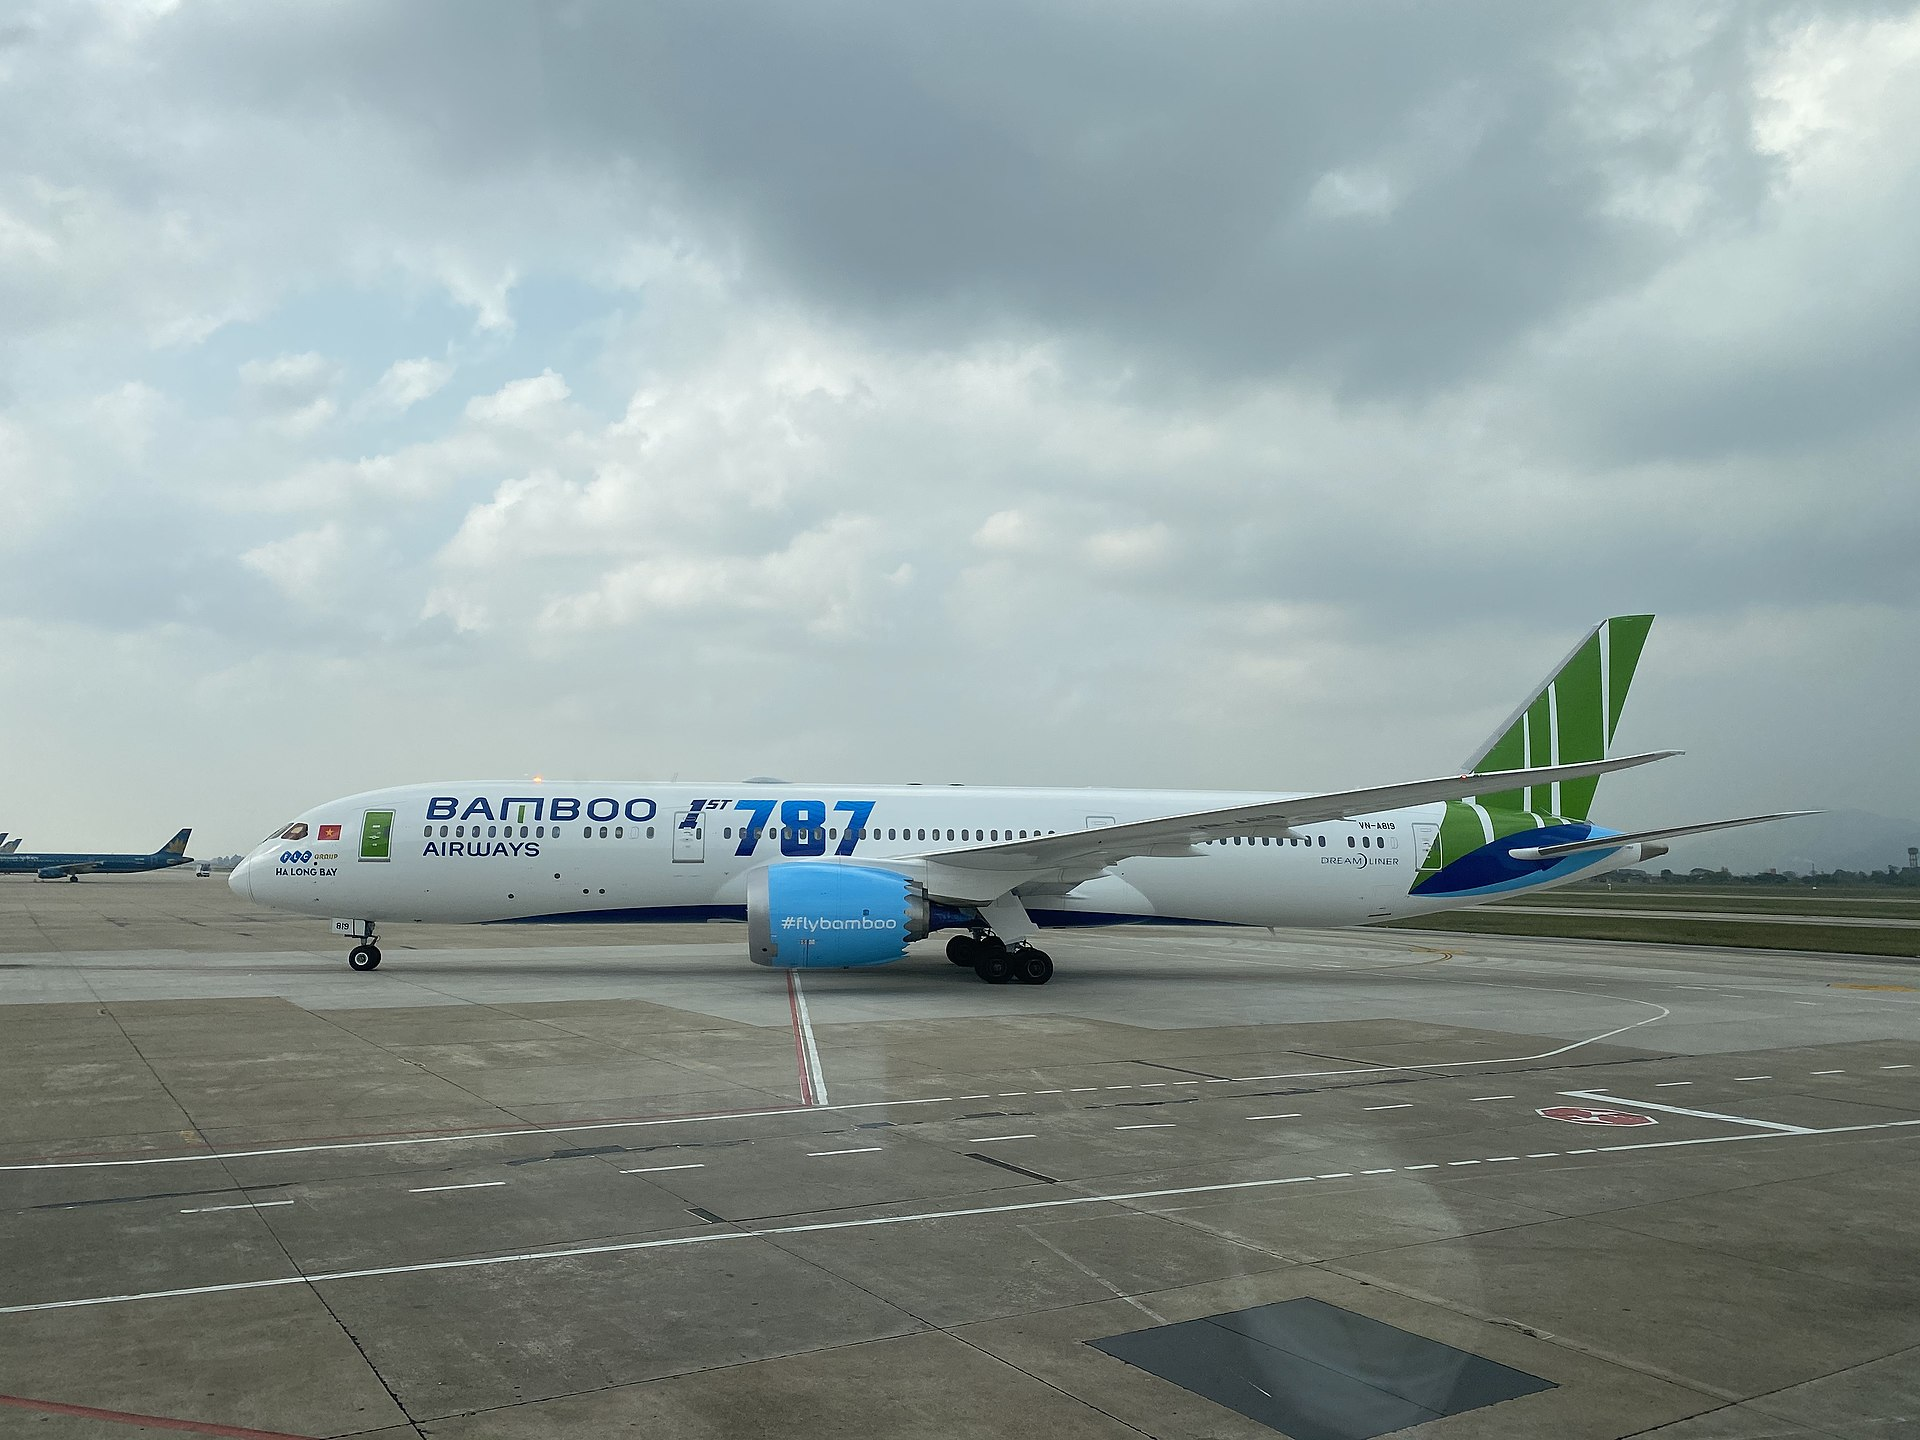 Airlines that made profit in 2020 — Bamboo Airways